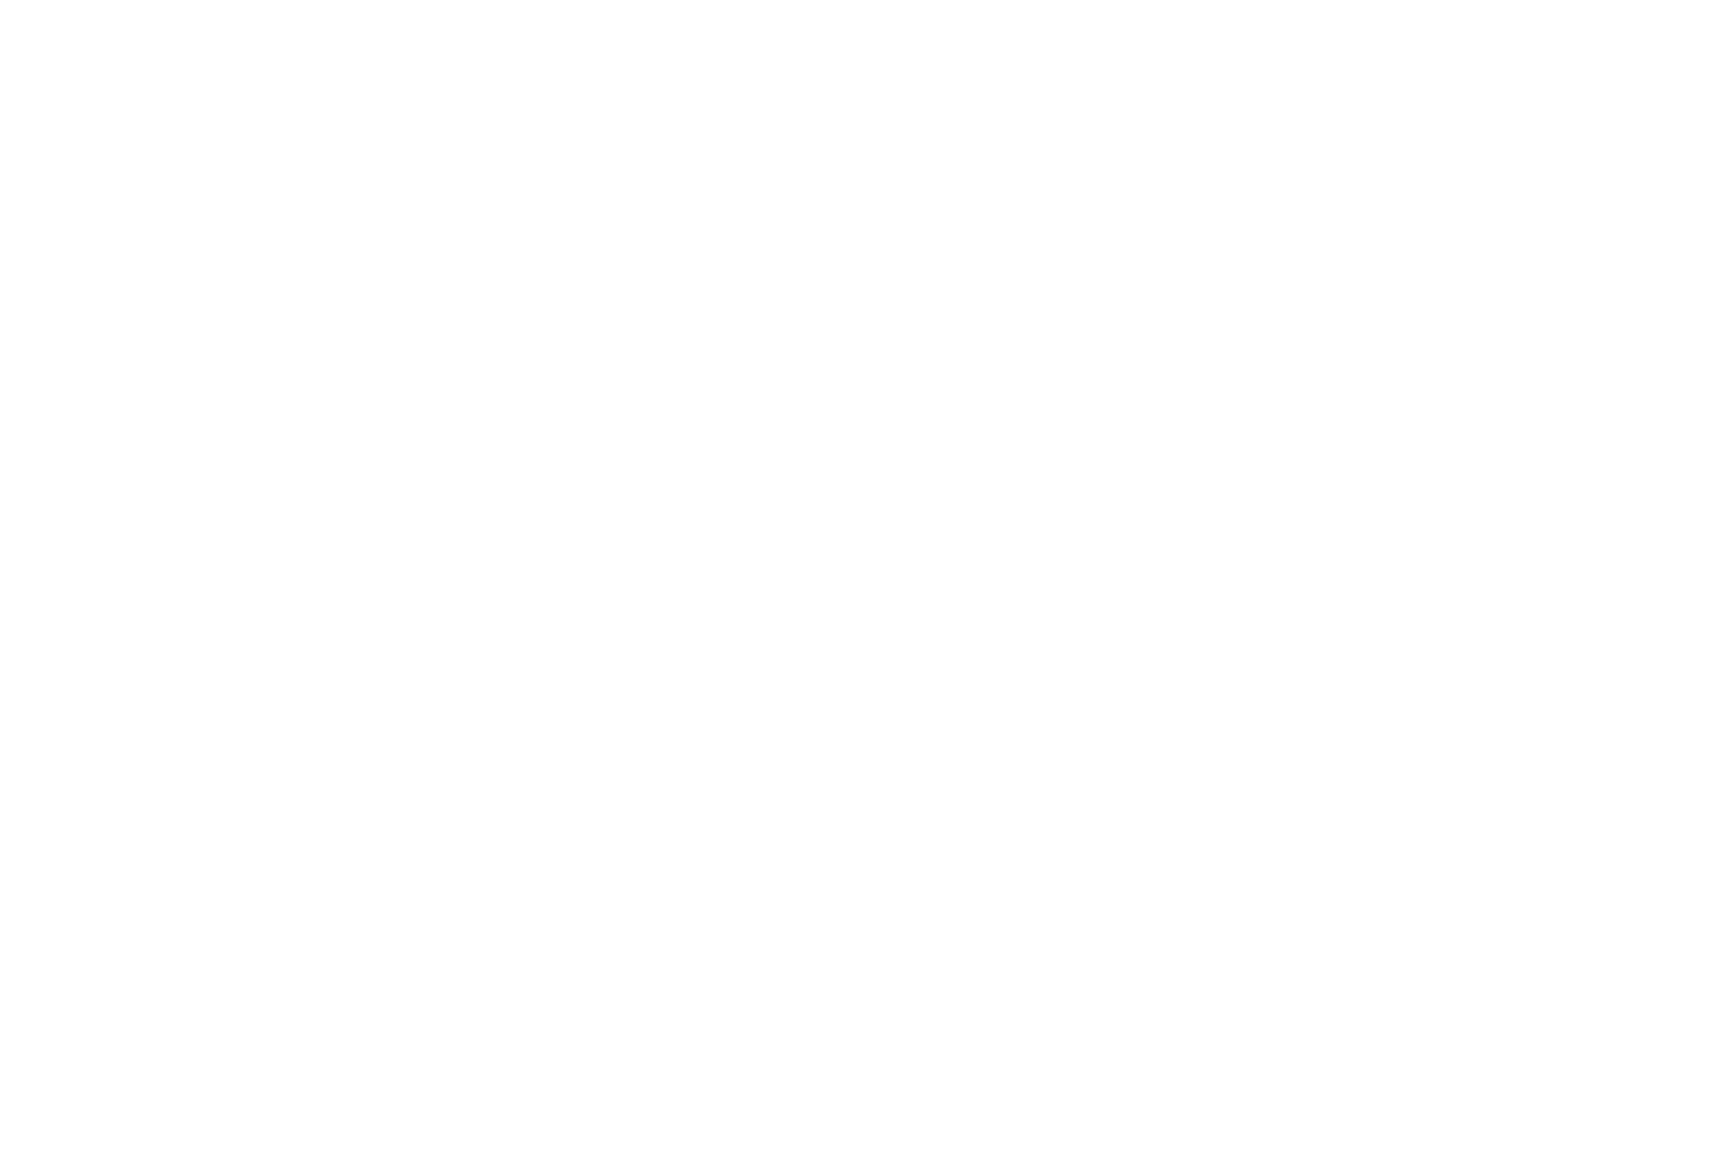 GOLD REMI WINNER - WorldFest-Houston International Film - 2019.png